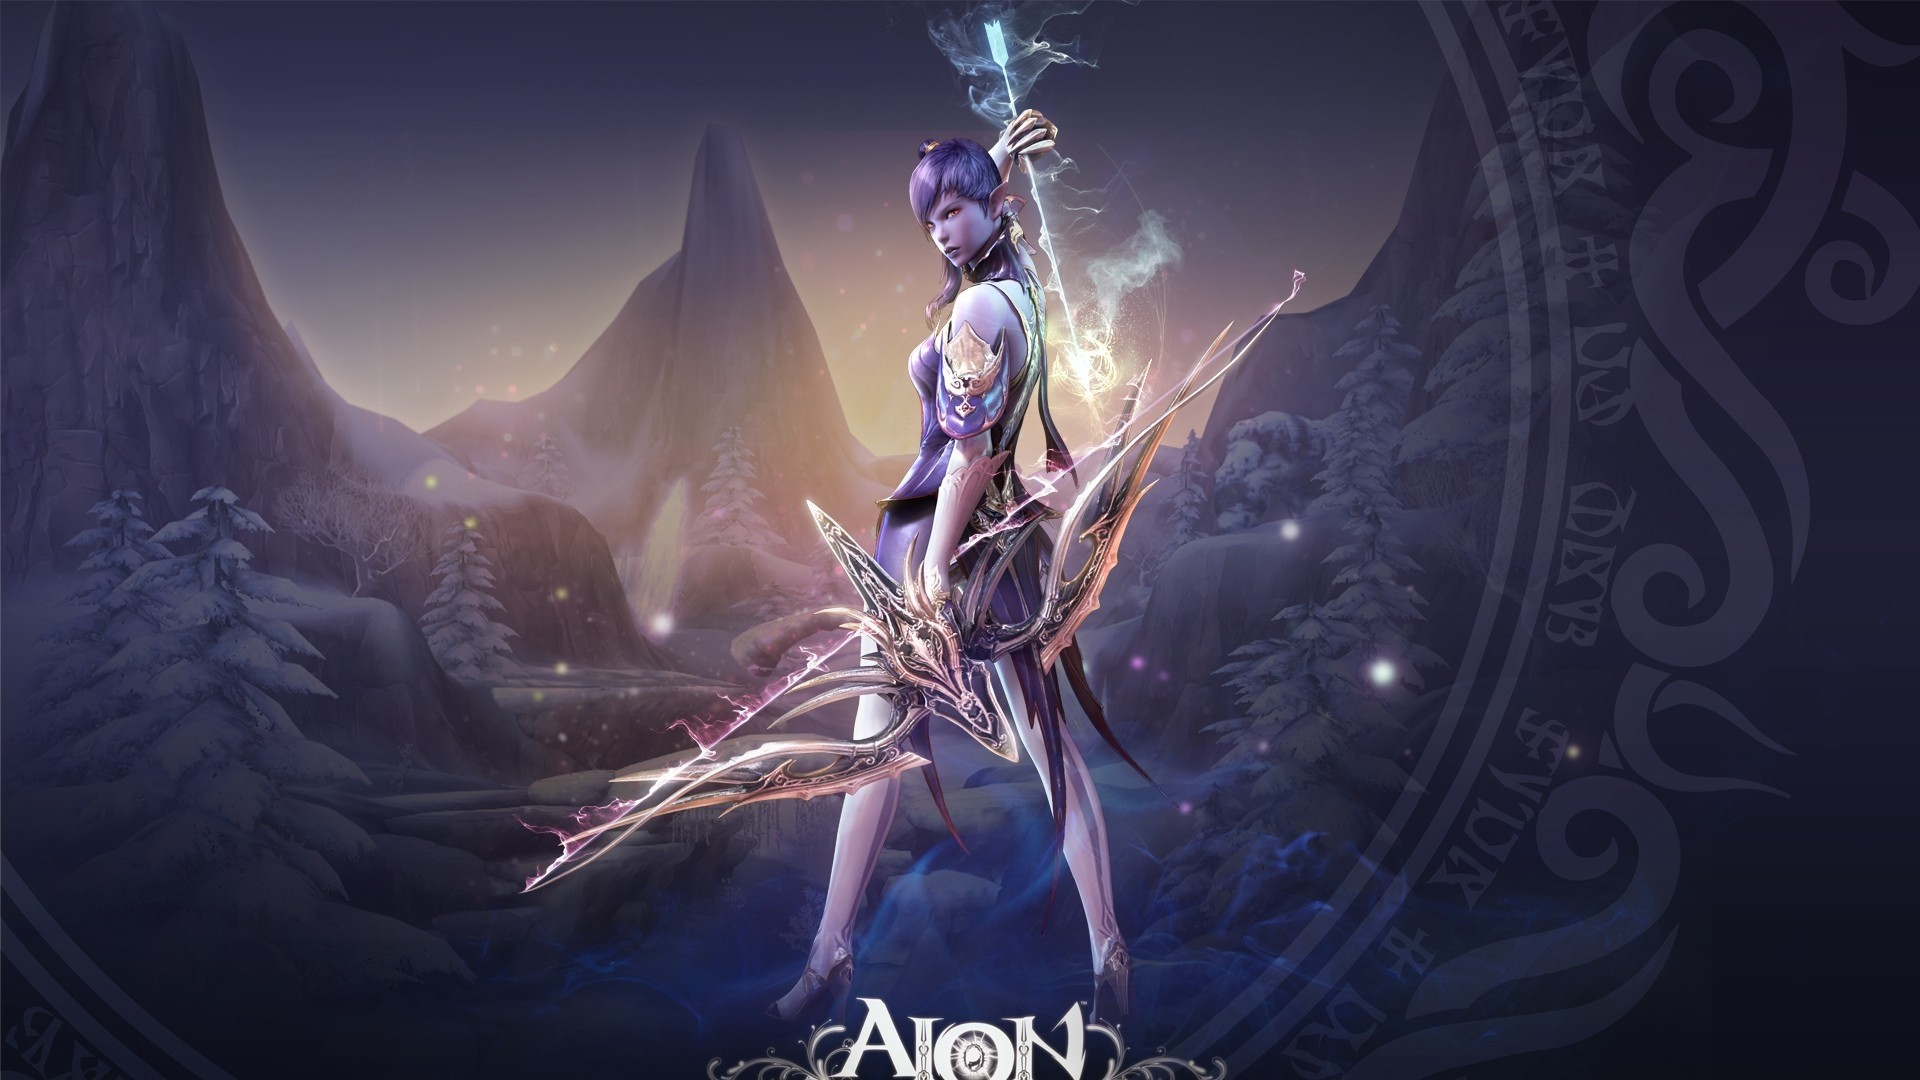 Download 1920x1080 Full HD 1080p 1080i aion the tower of eternity HD Wallpaper